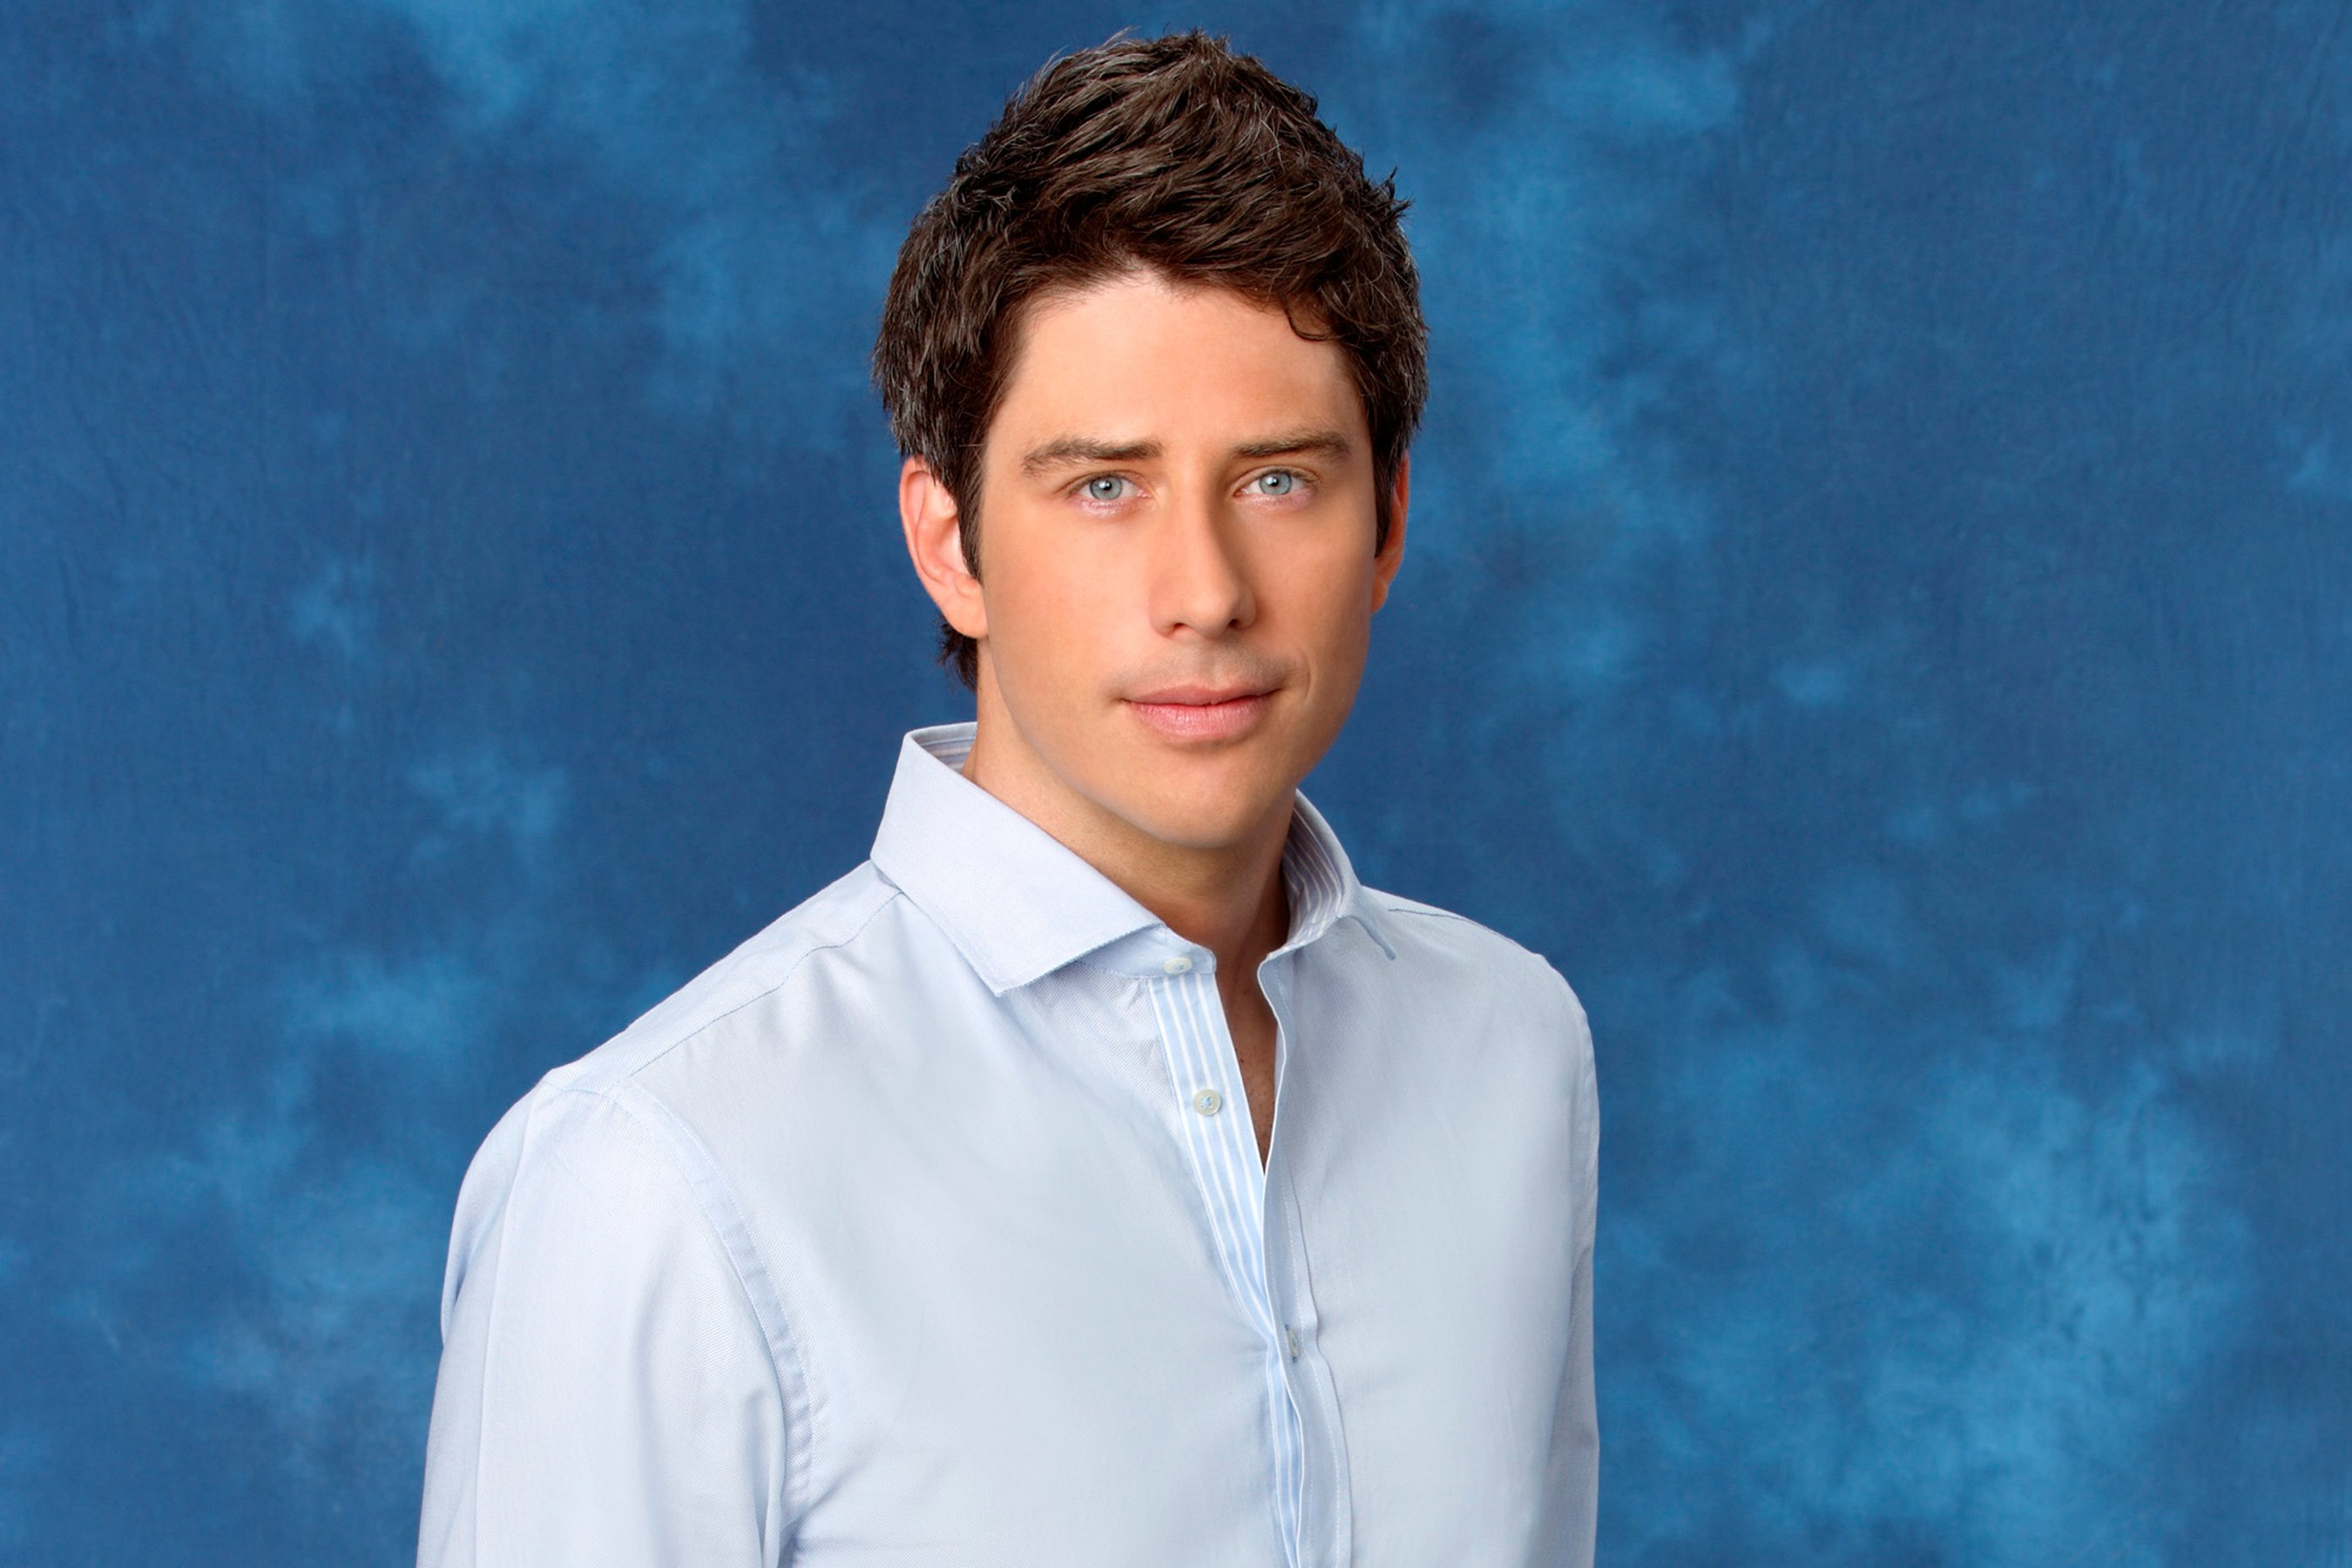 Arie Luyendyk Jr. poses against a blue background